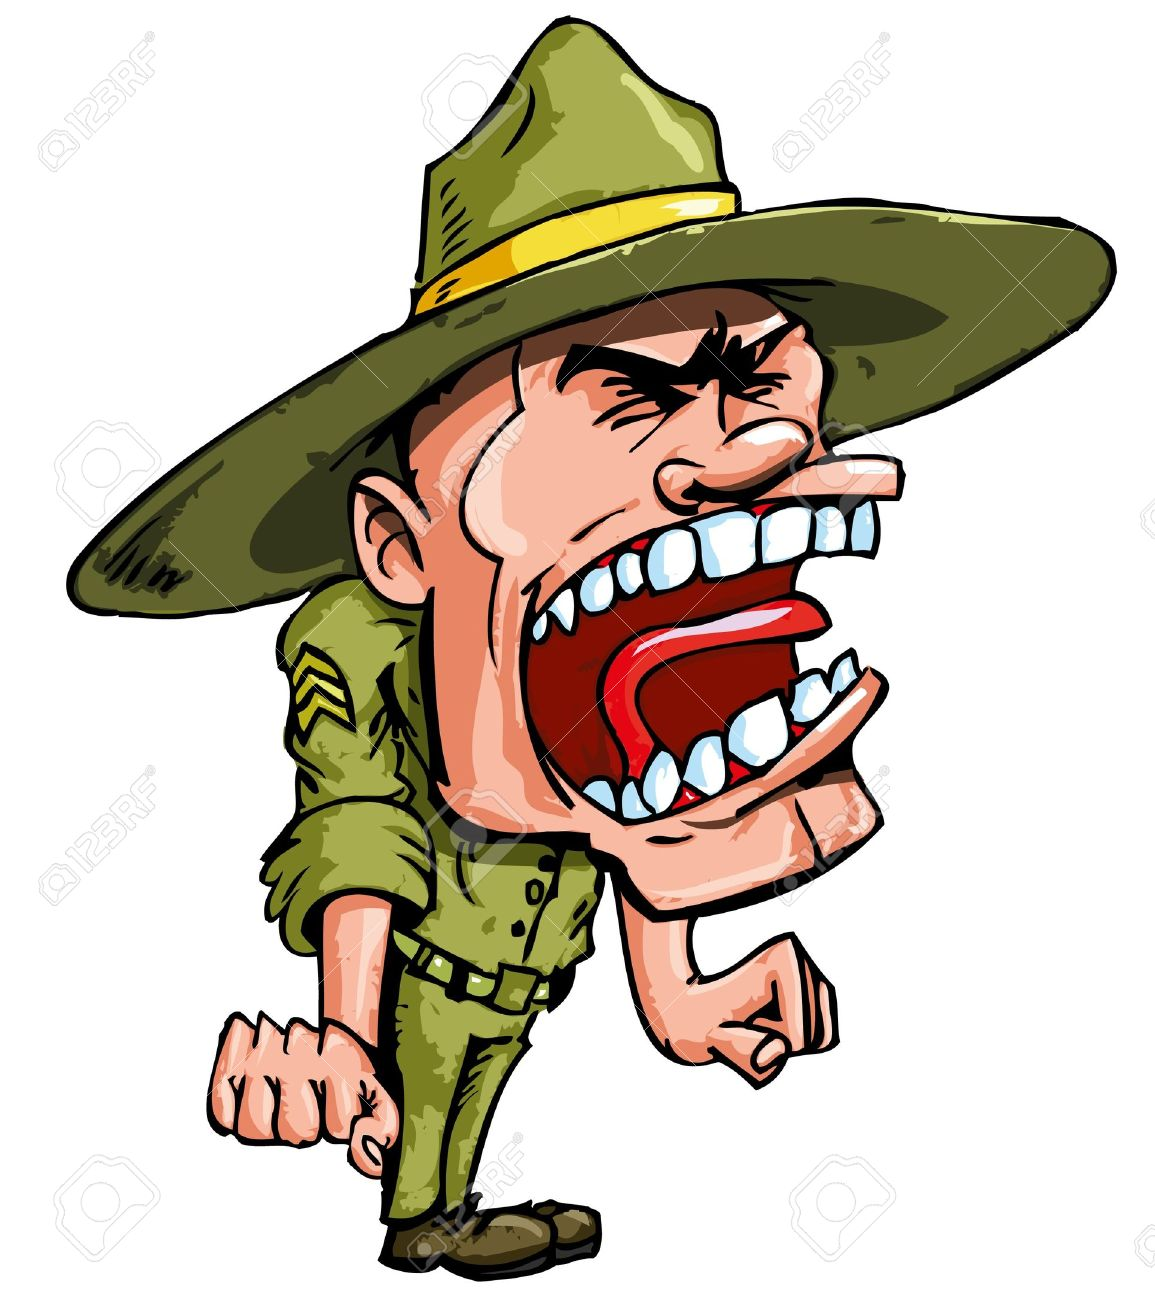 1155x1300 Angry Cartoon Drill Sergeant Screaming In Anger Royalty Free